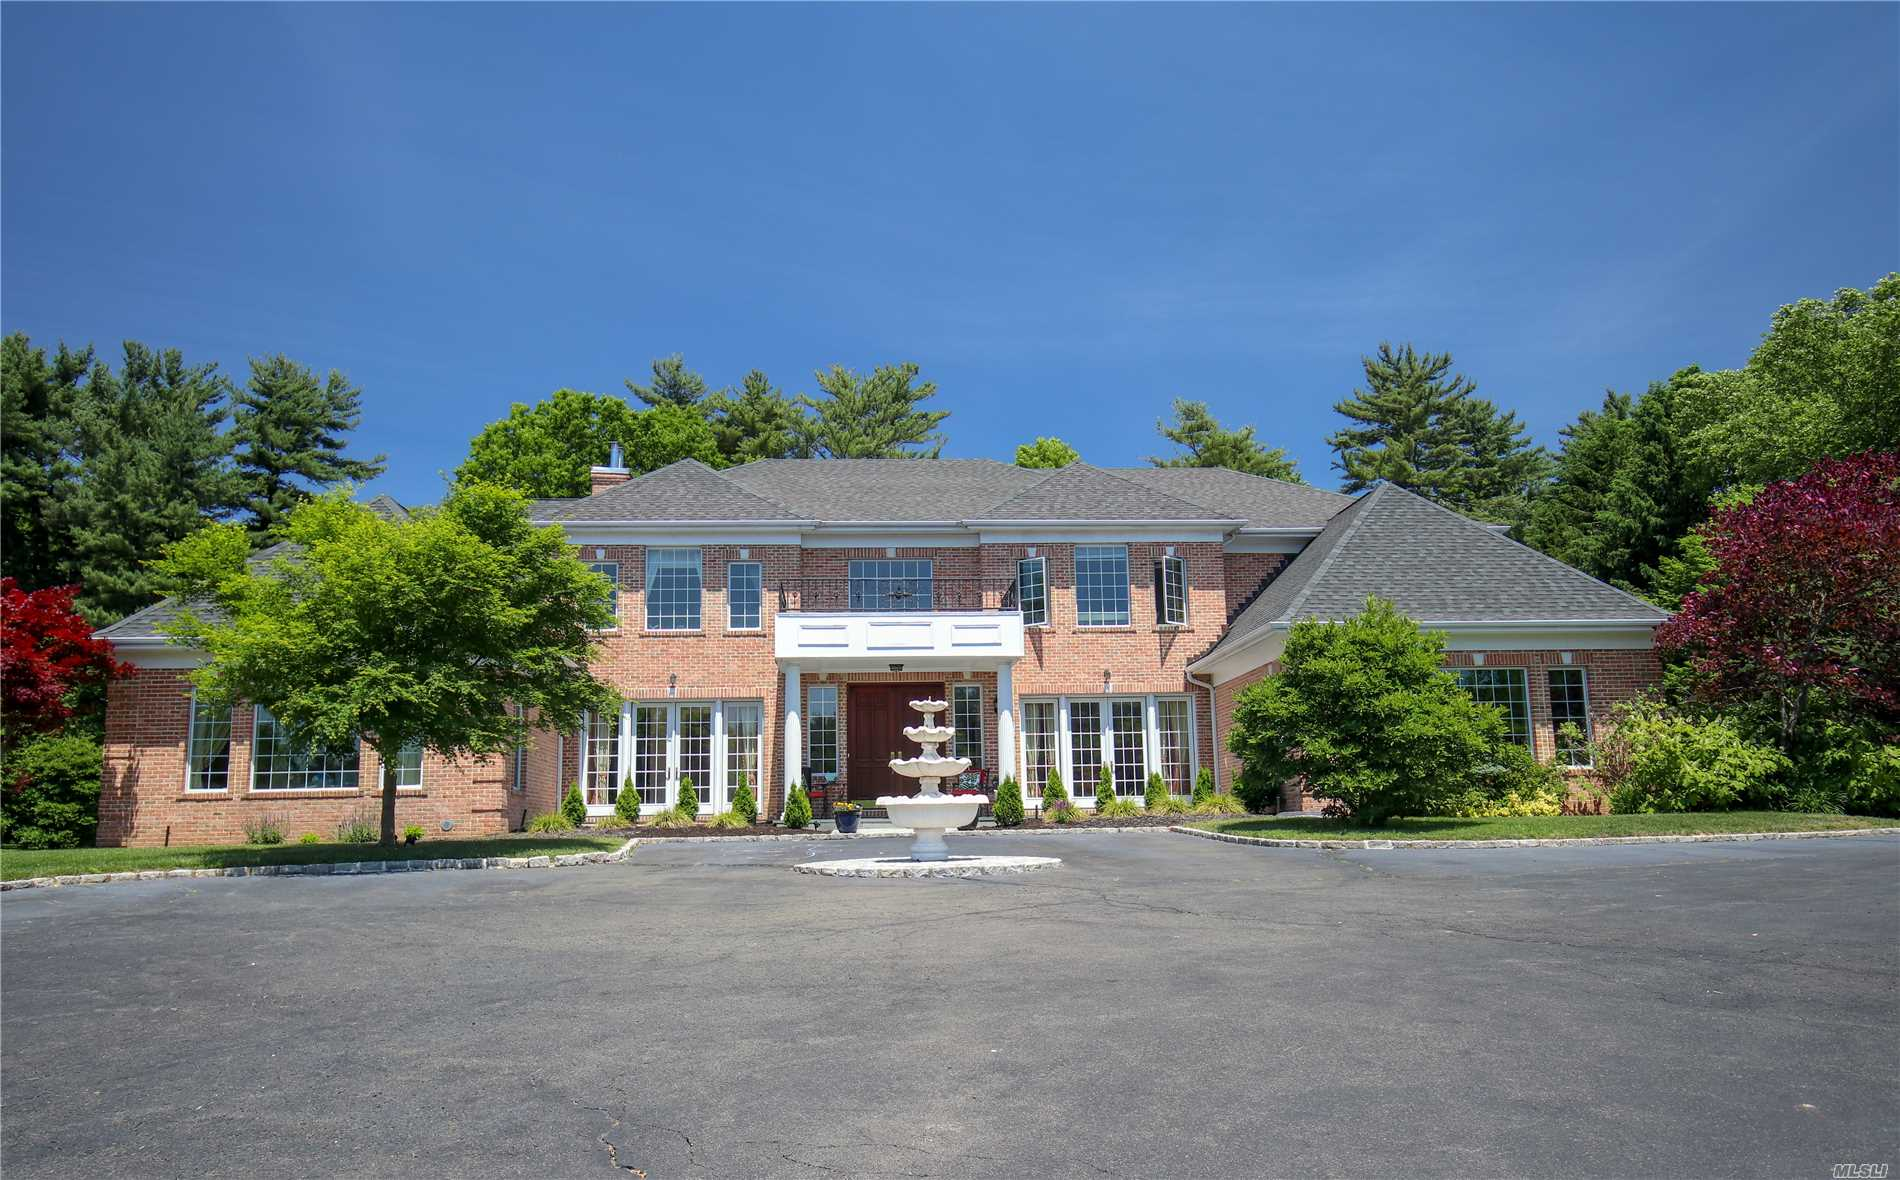 261 Hillcrest Ln - Upper Brookville, New York